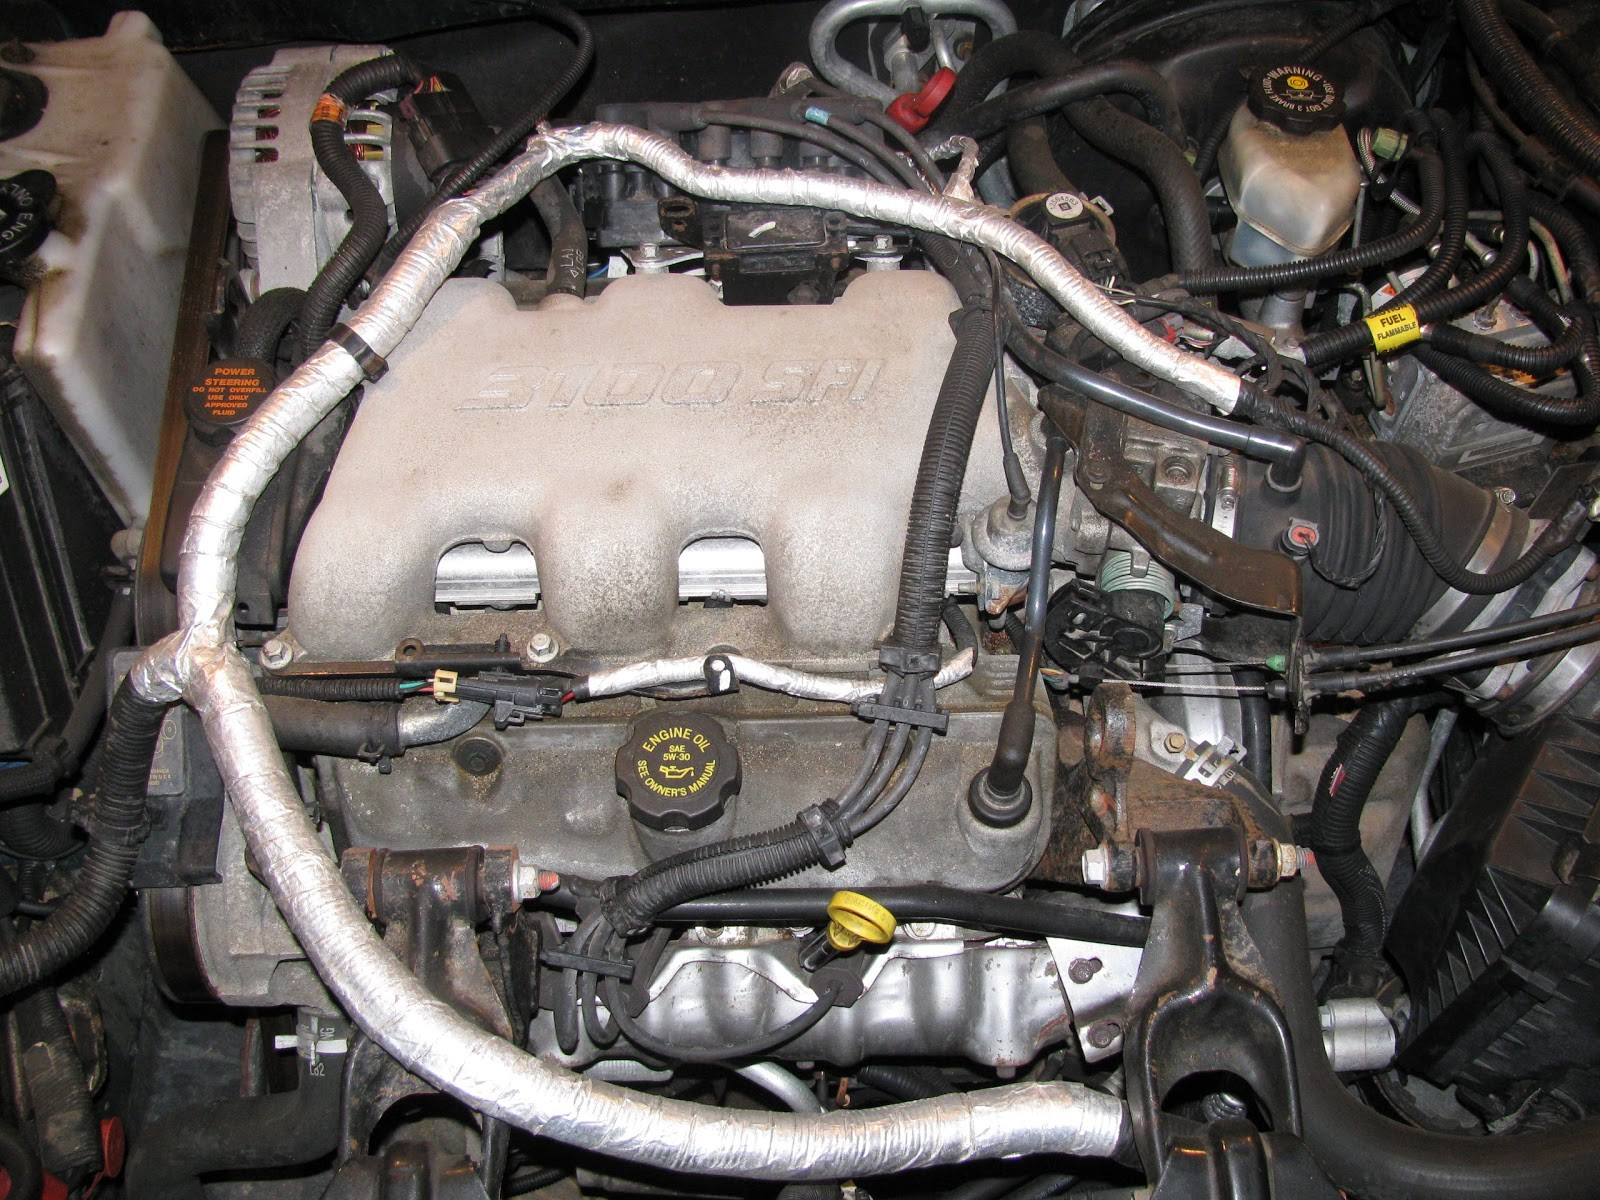 3 8l Engine Diagram Buick Wiring Library 3800 V6 The Original Mechanic 1l Gm Replacing Intake Manifold Of